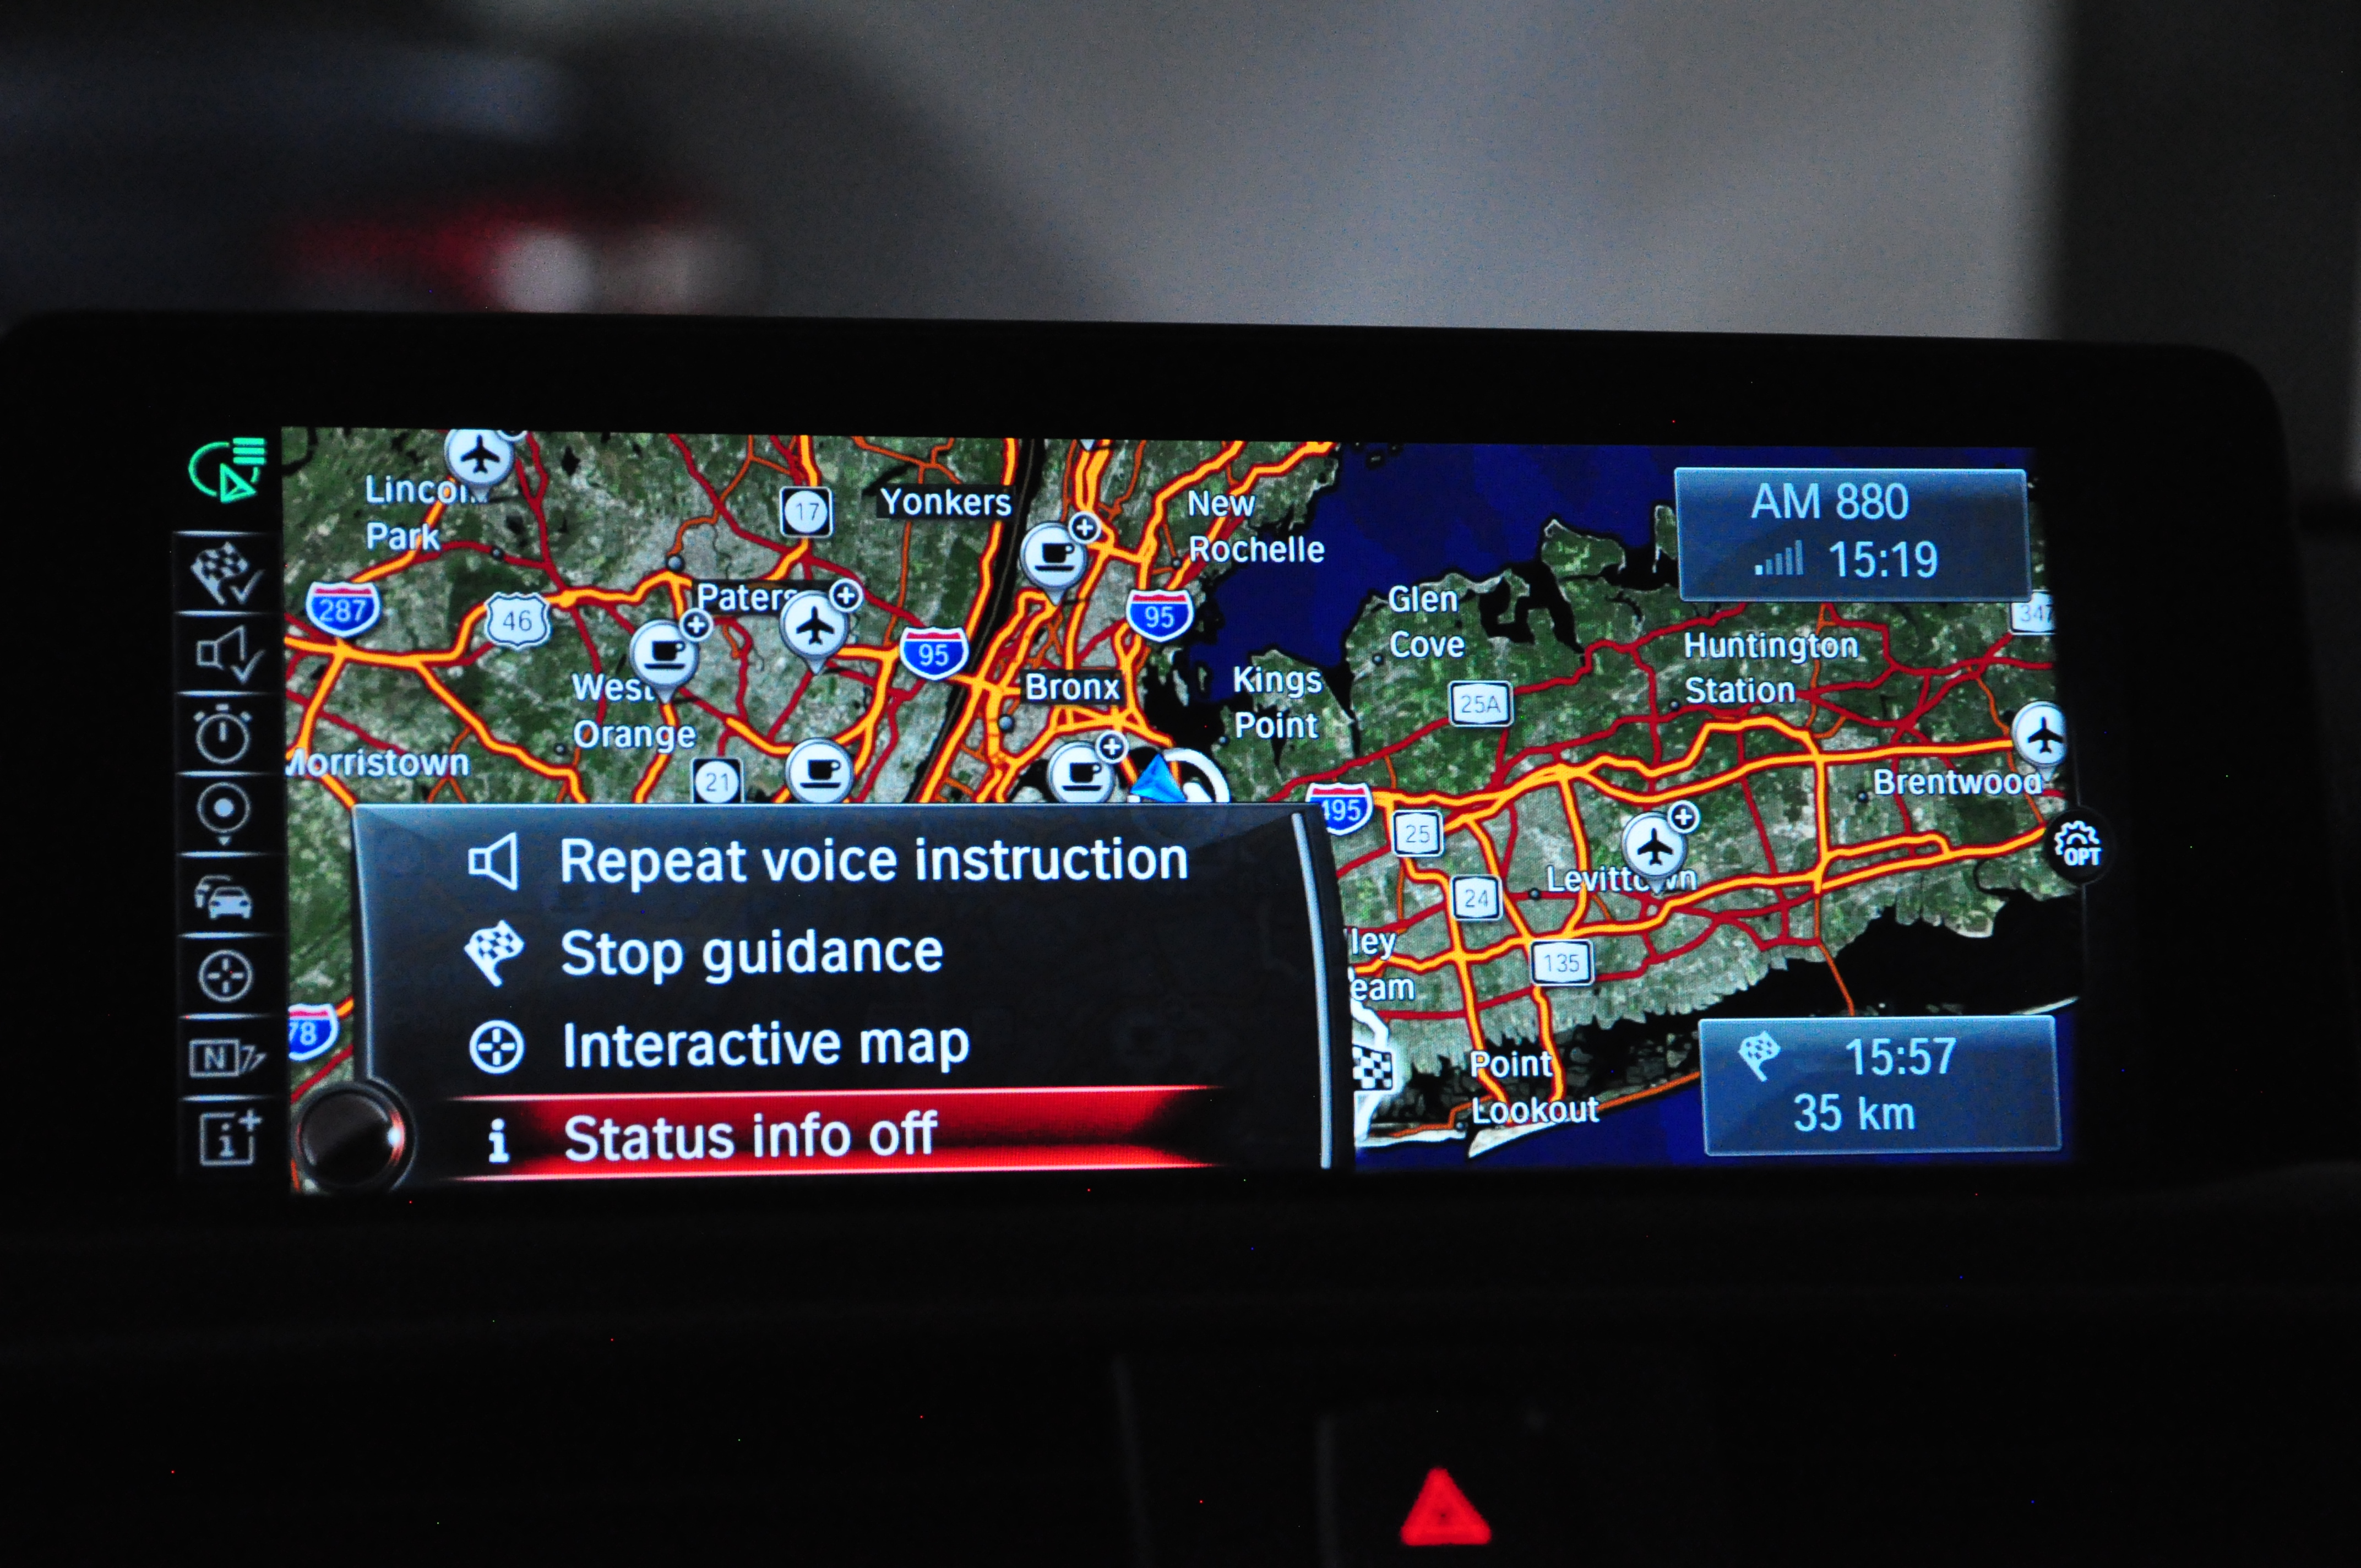 The app will automatically start the car's navigation with the desired destination.